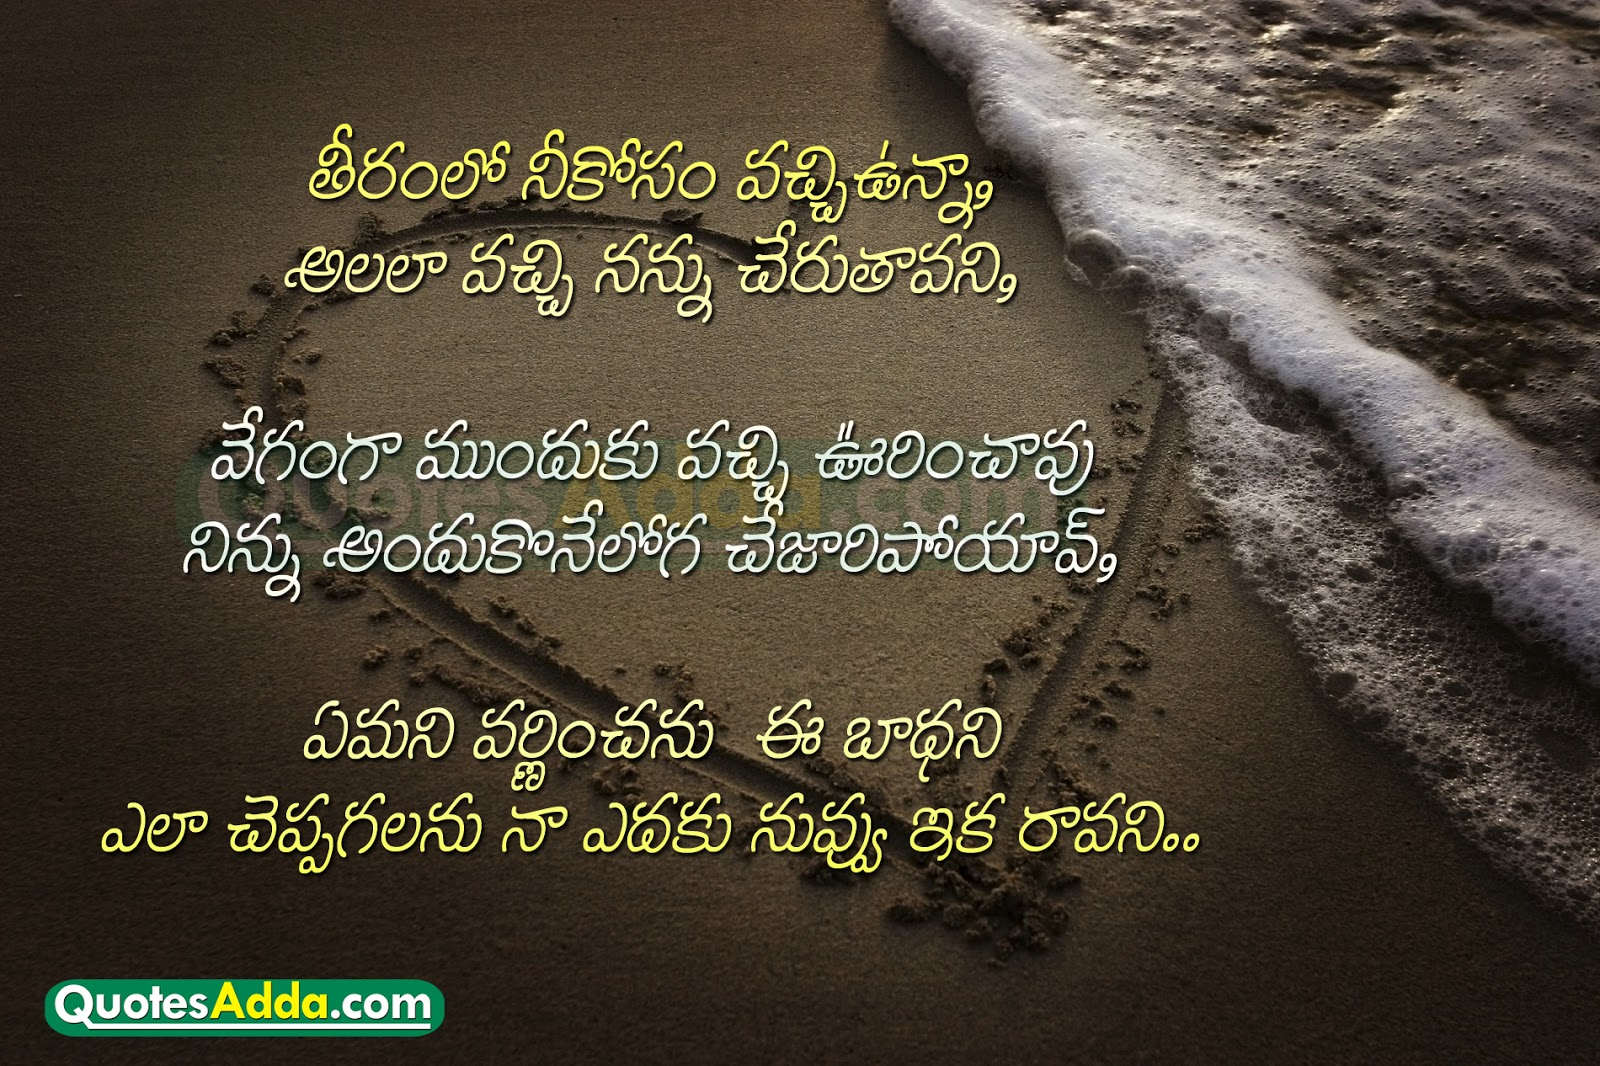 Miss U Love Quotes In Telugu : Quotes, Telugu Alone Quotations, Best Telugu Miss You Quotes, Miss You ...